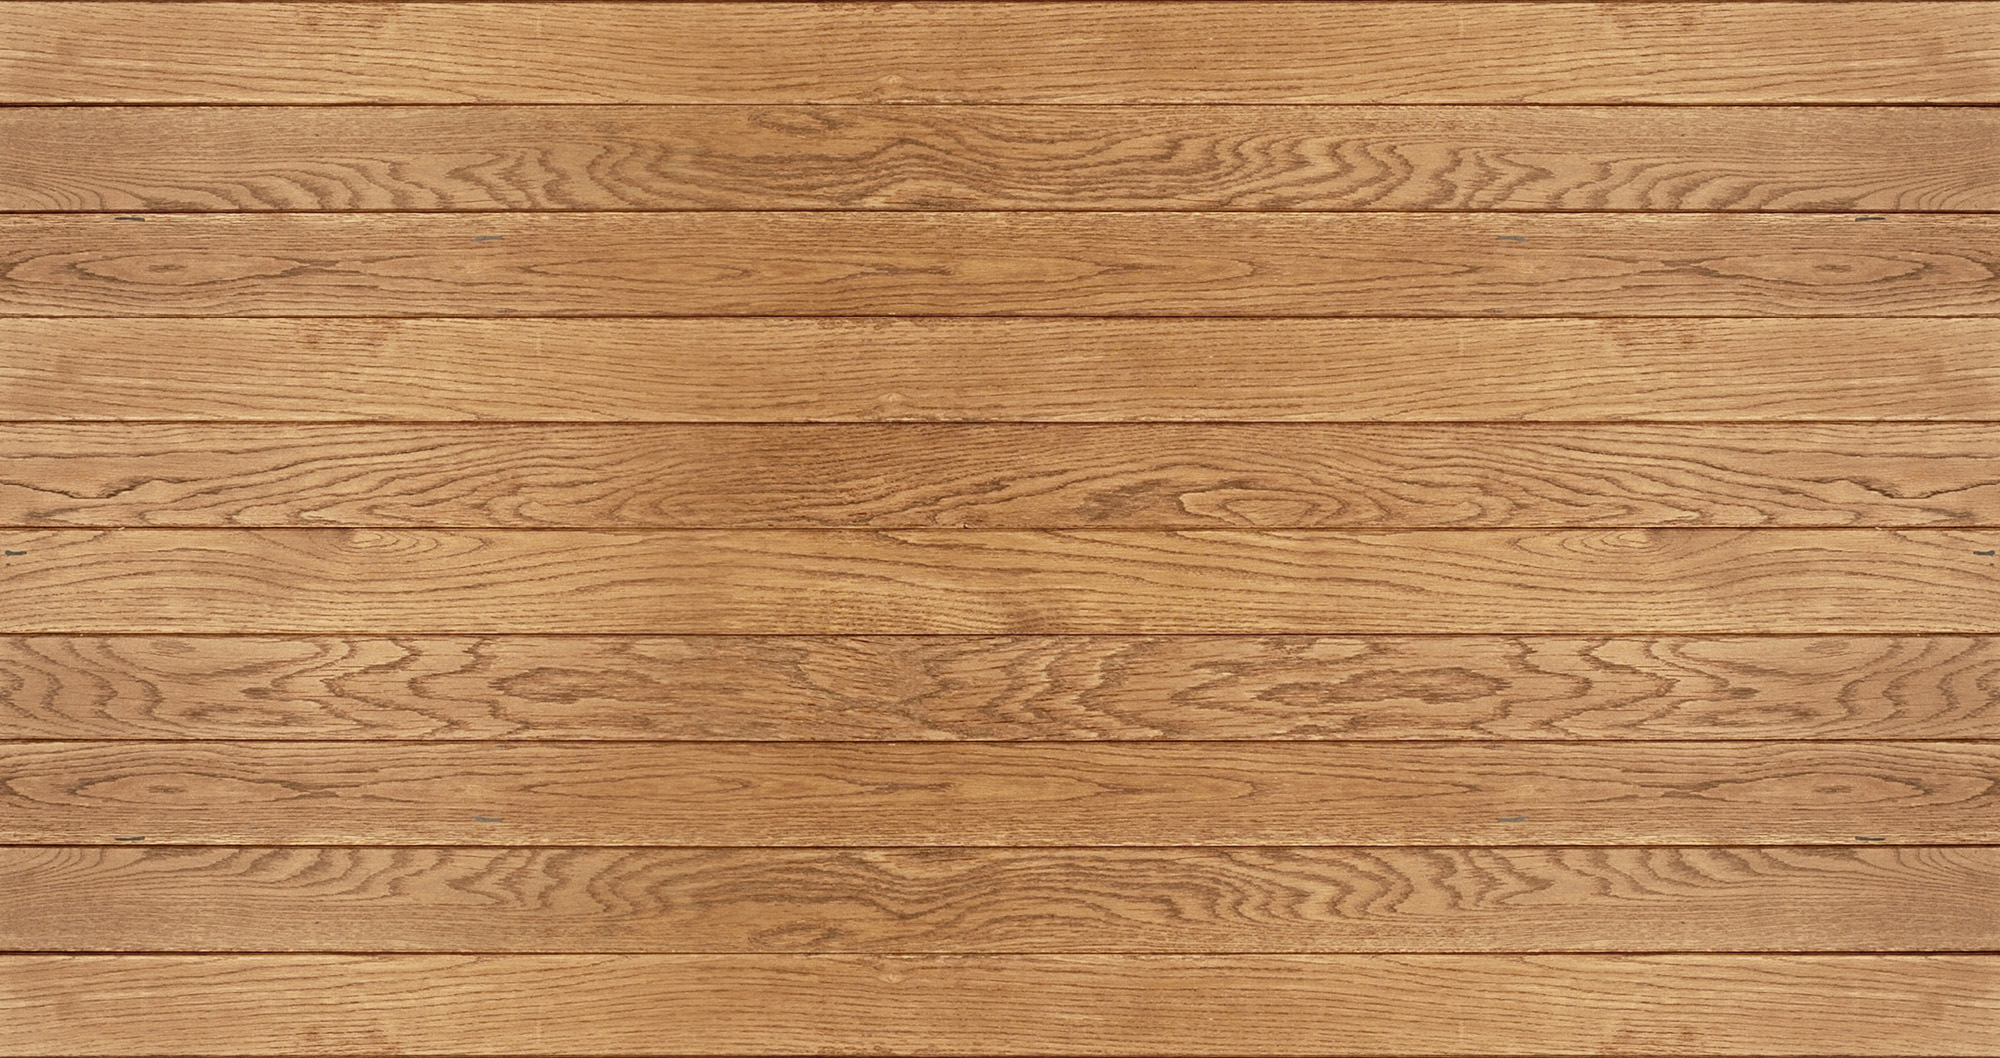 Wood texture wooden plank - Picture Suggestion For Wood Plank Texture Background